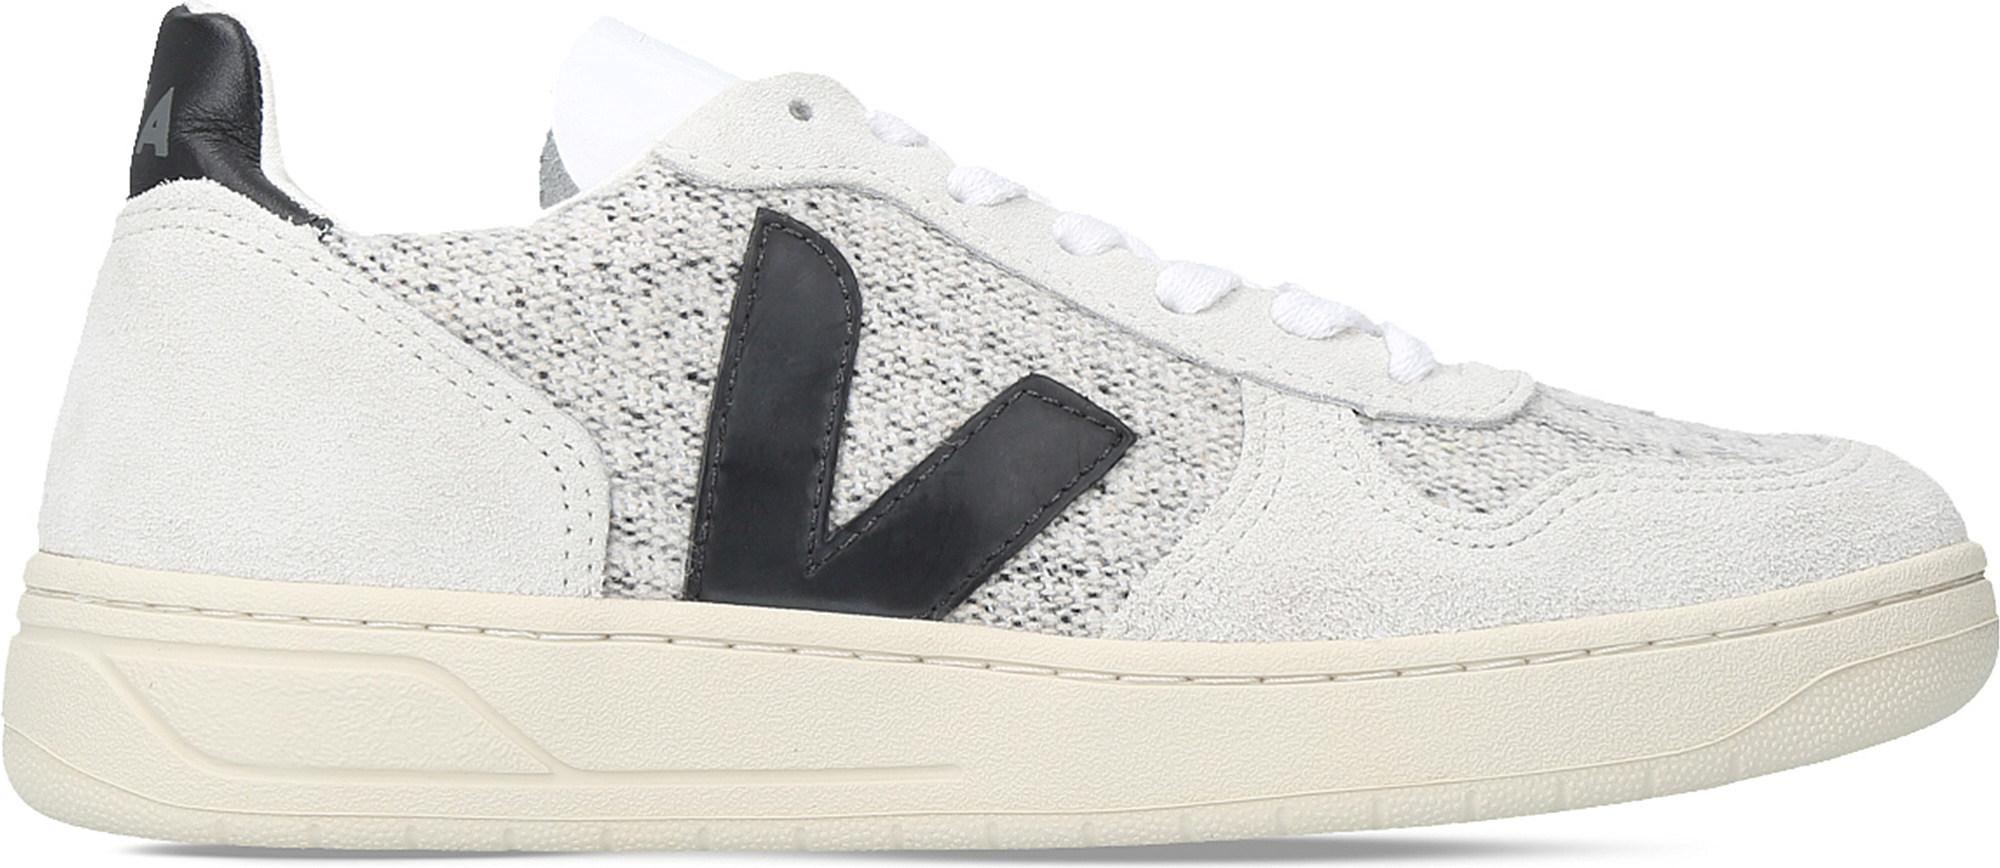 Veja V10 Flannel And Suede Trainers in